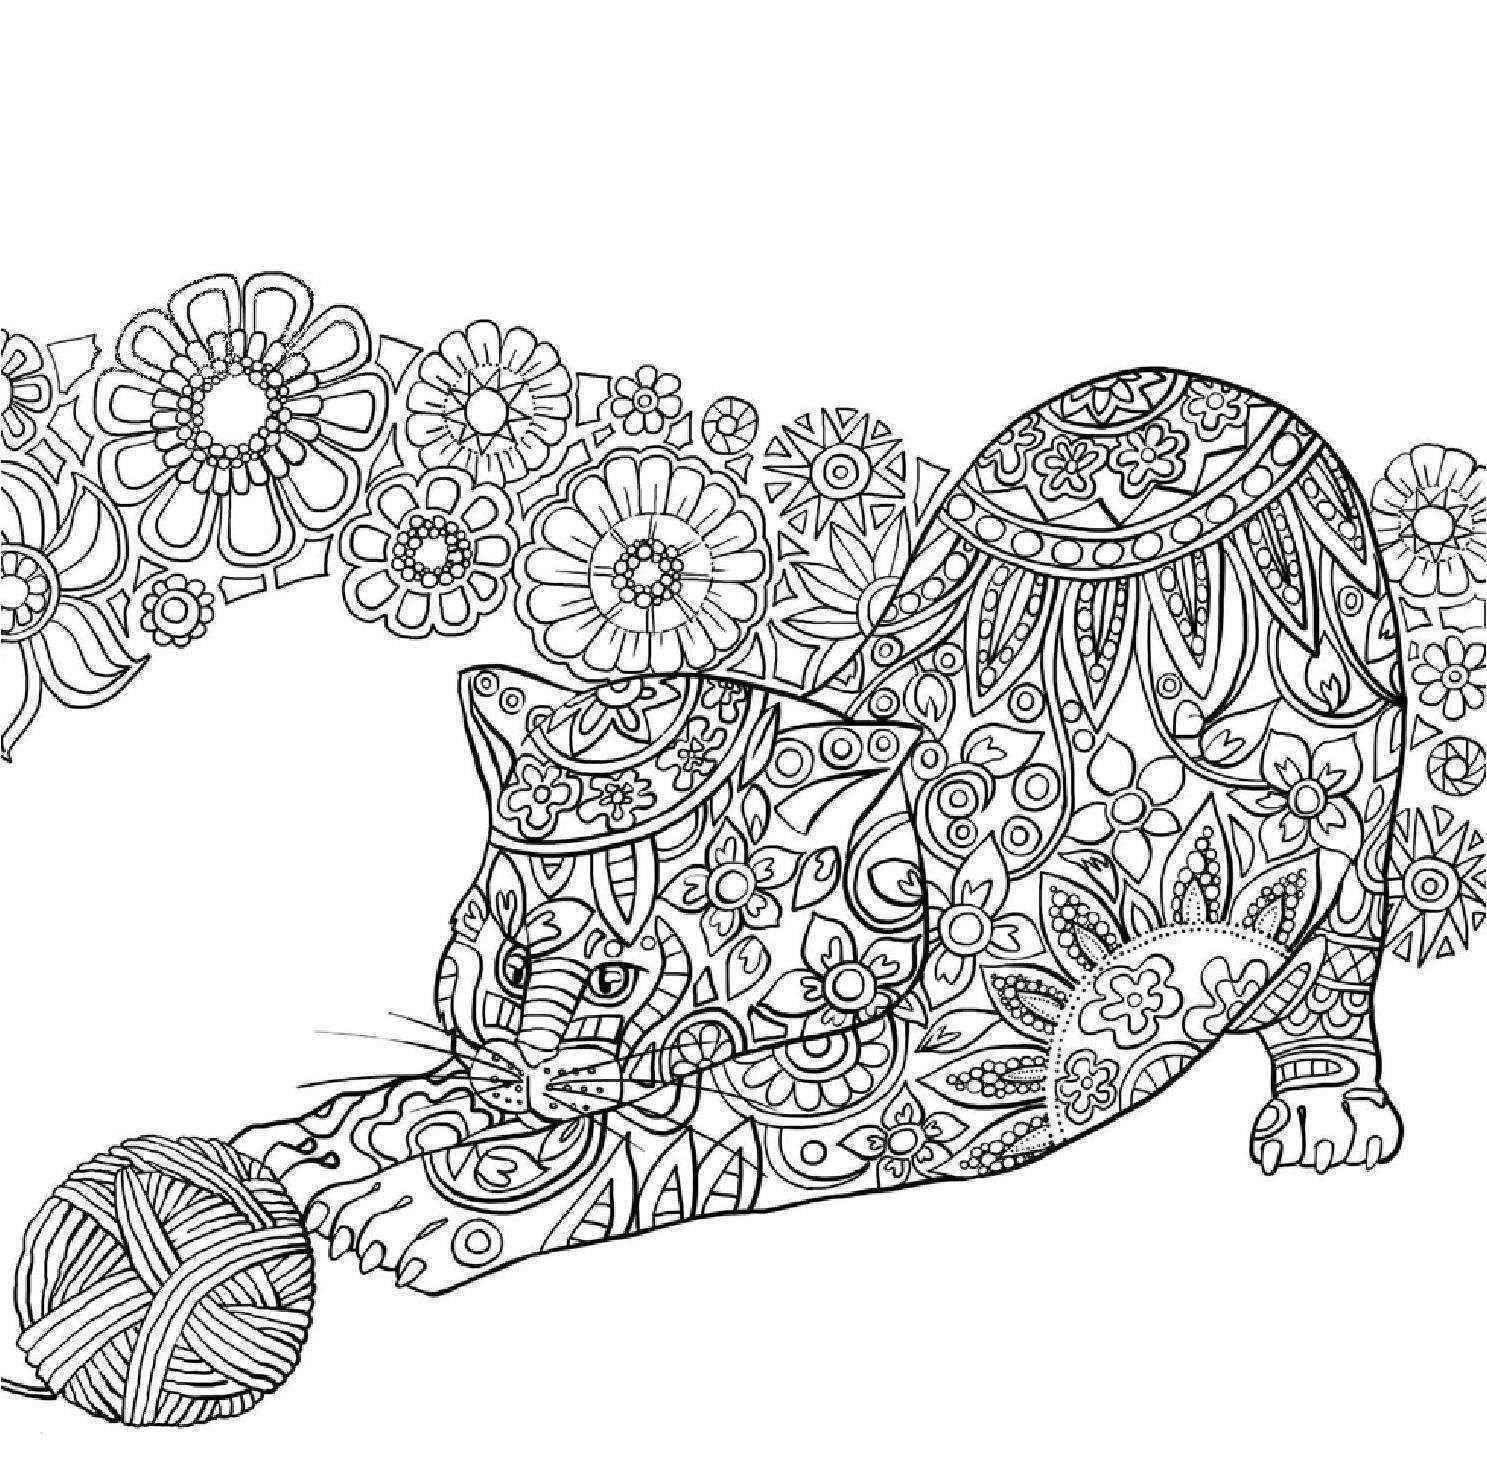 Mia and Me Coloring Pages Inspirierend 41 Ideas Coloriage Mia and Me Coloriage Kids Das Bild